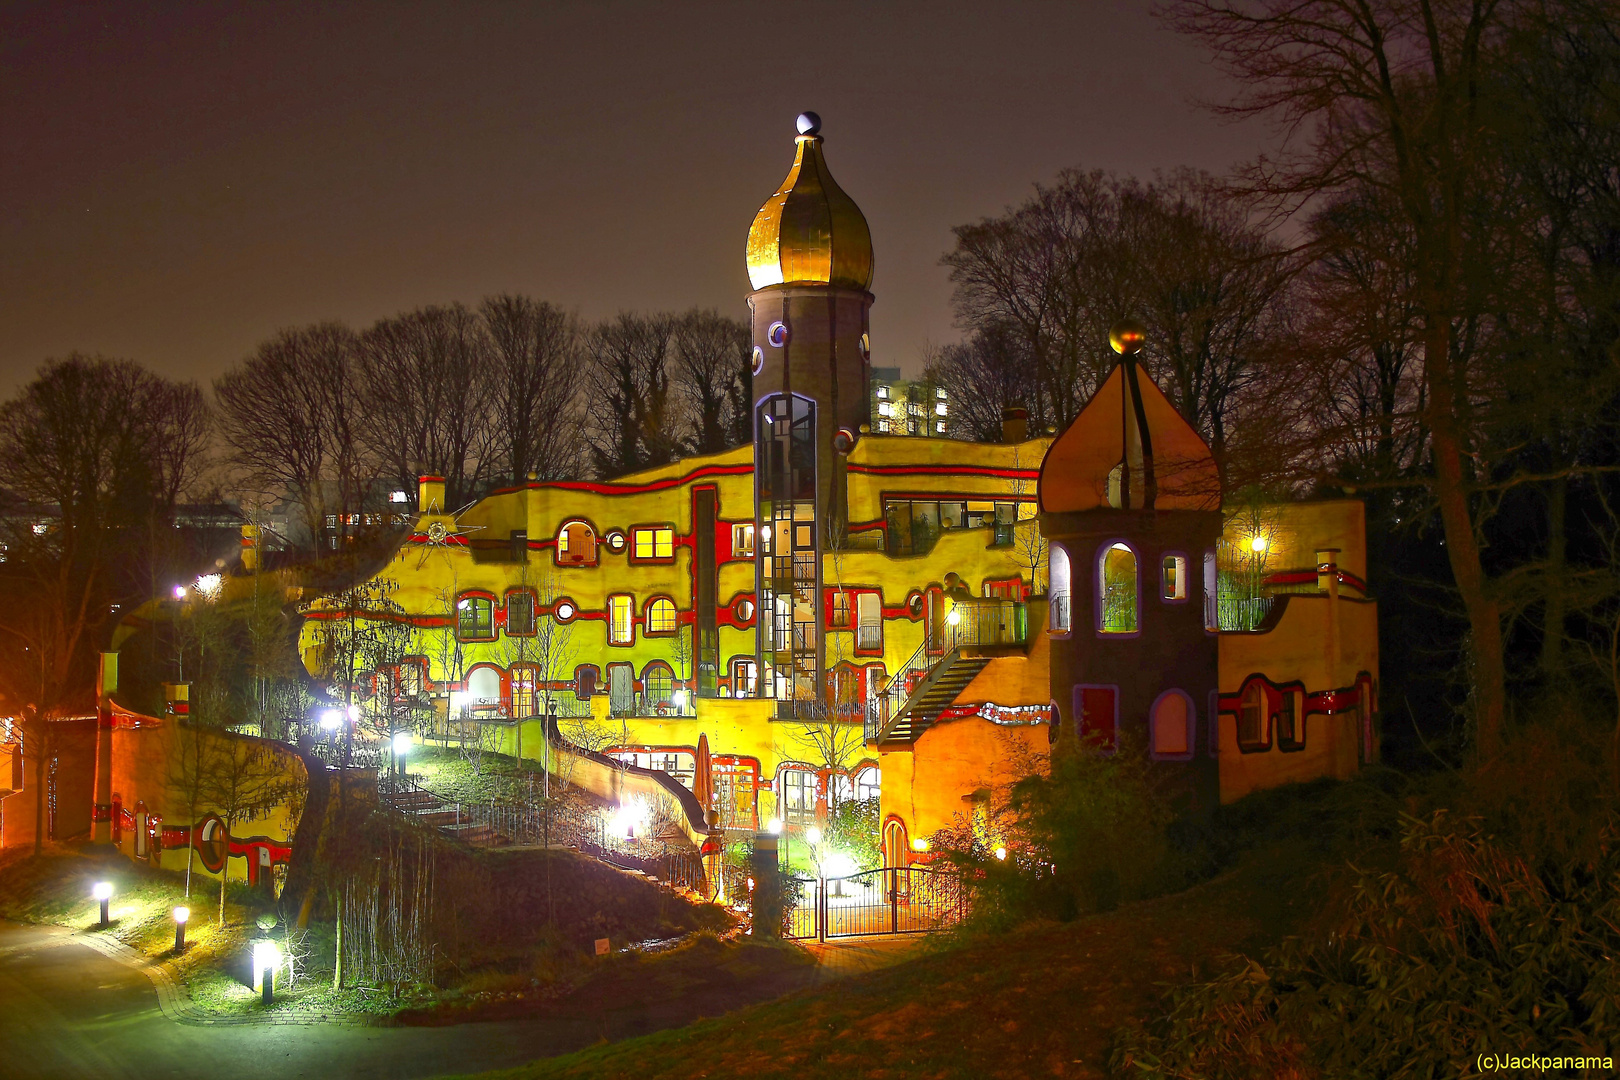 hundertwasserhaus im grugapark essen foto bild architektur architektur bei nacht. Black Bedroom Furniture Sets. Home Design Ideas